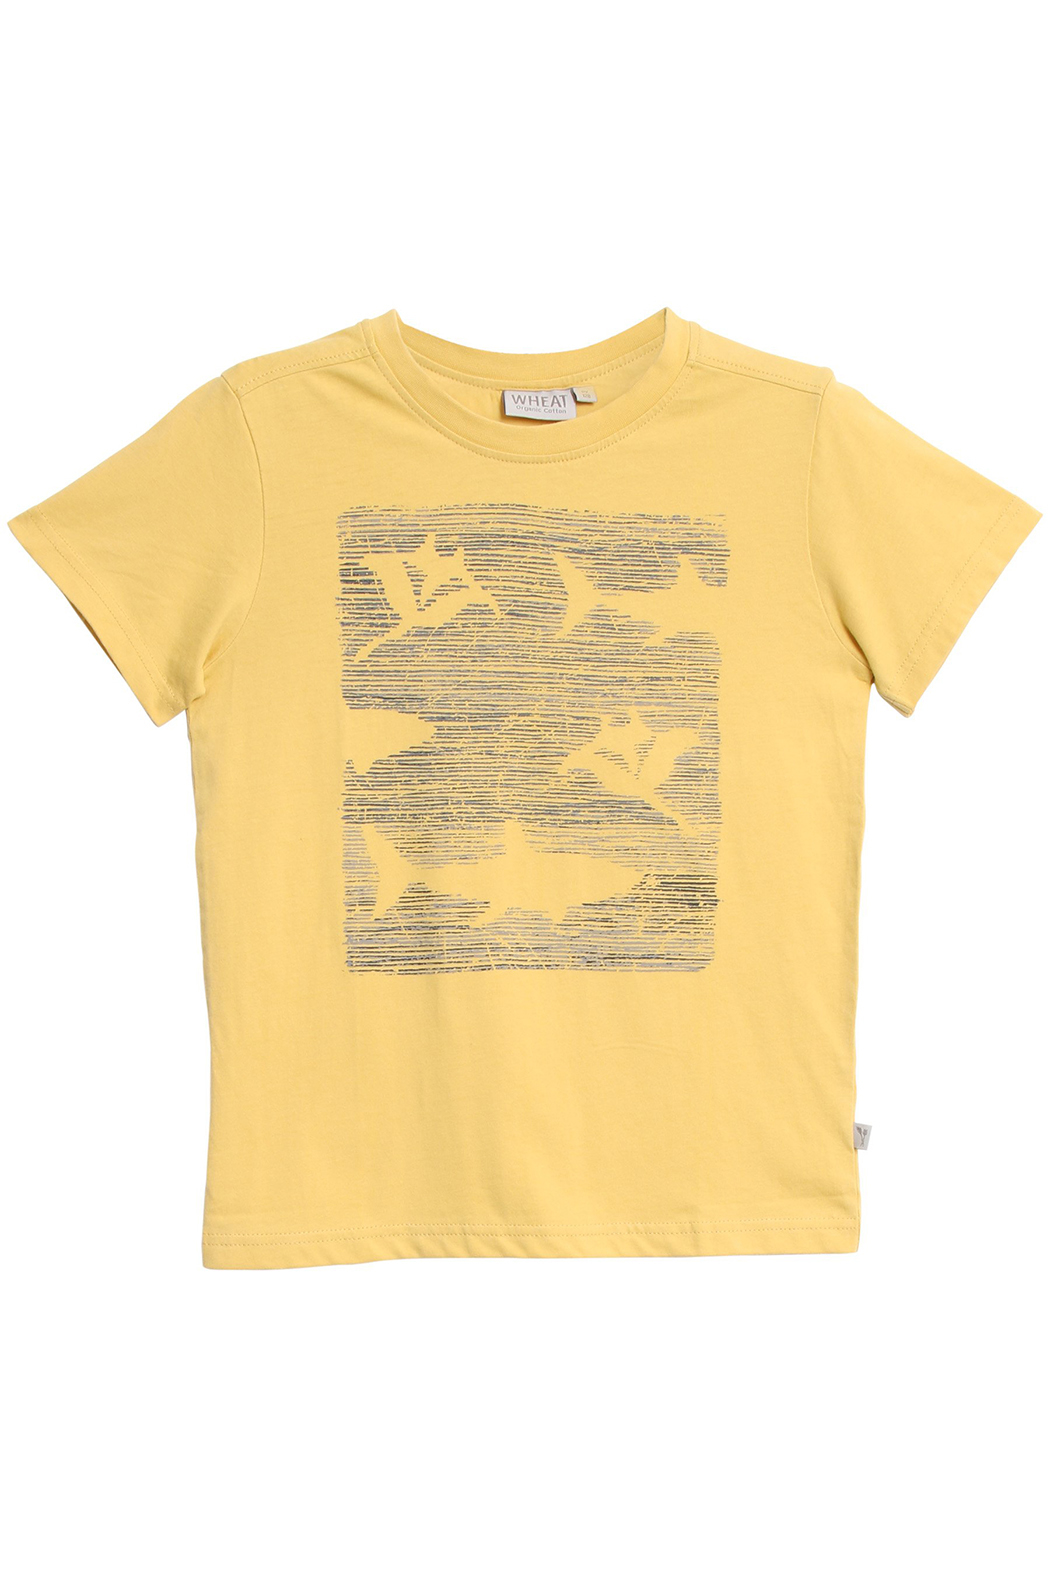 Wheat T-Shirt Sea Life - Main Image